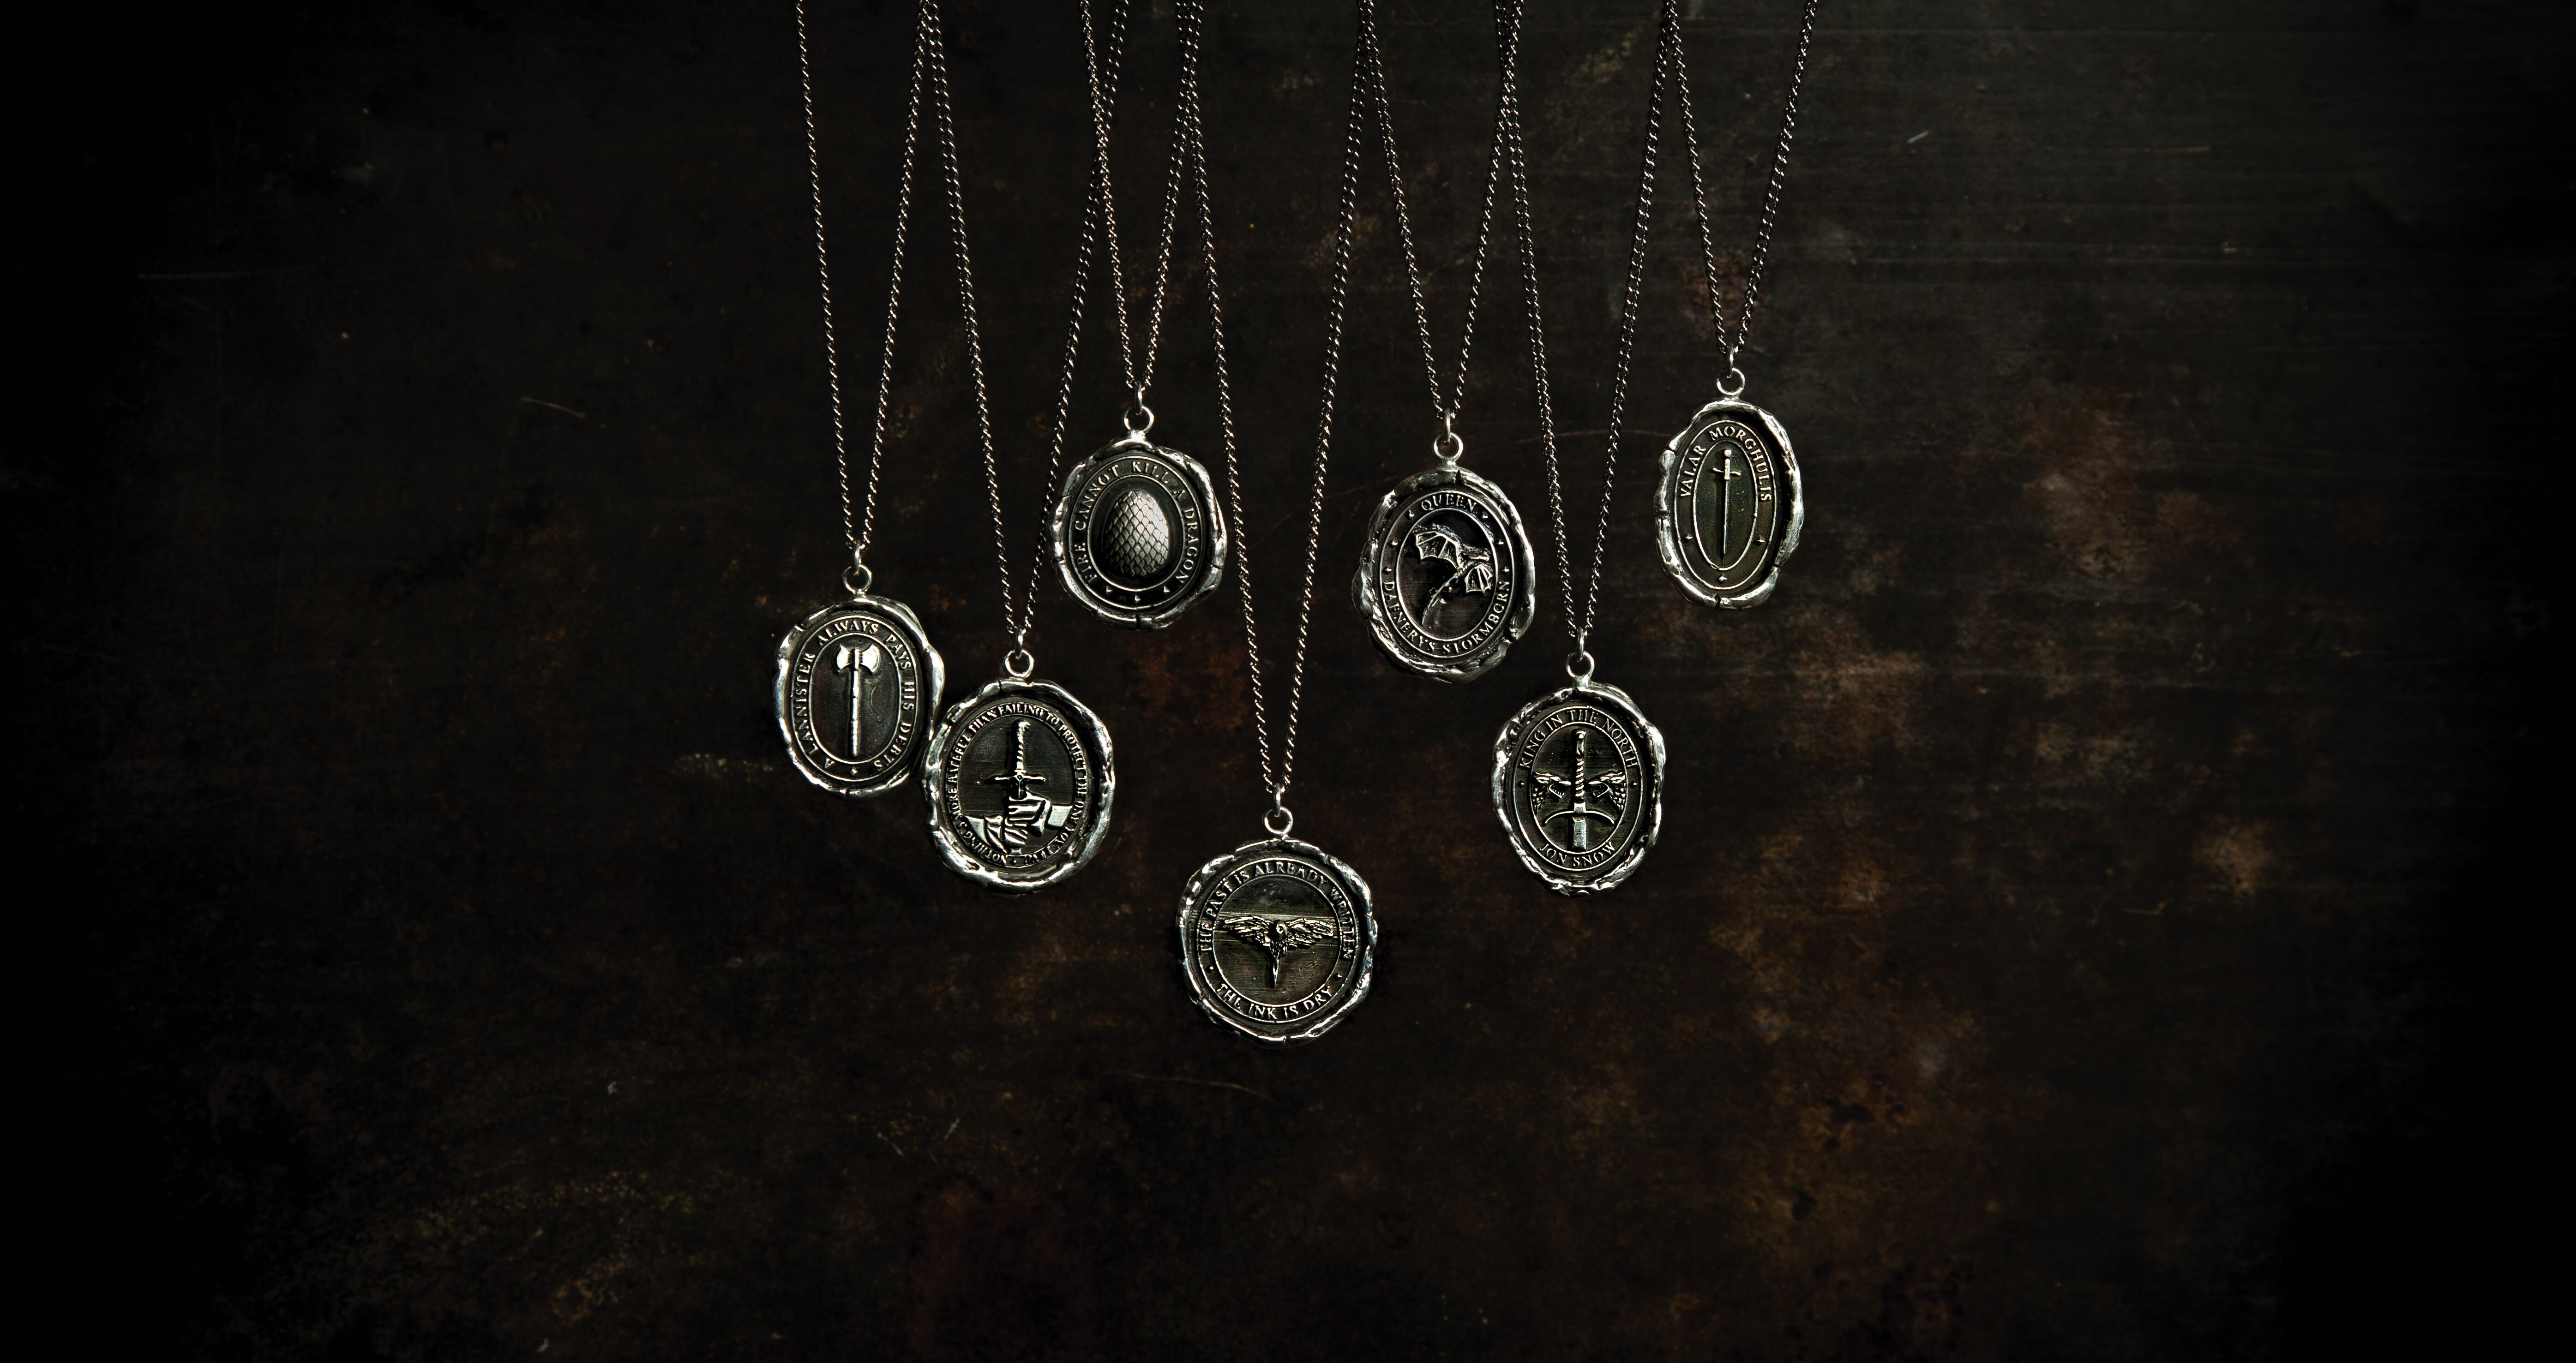 Celebrate Game of Thrones' final season with Pyrrha's new jewelry collection